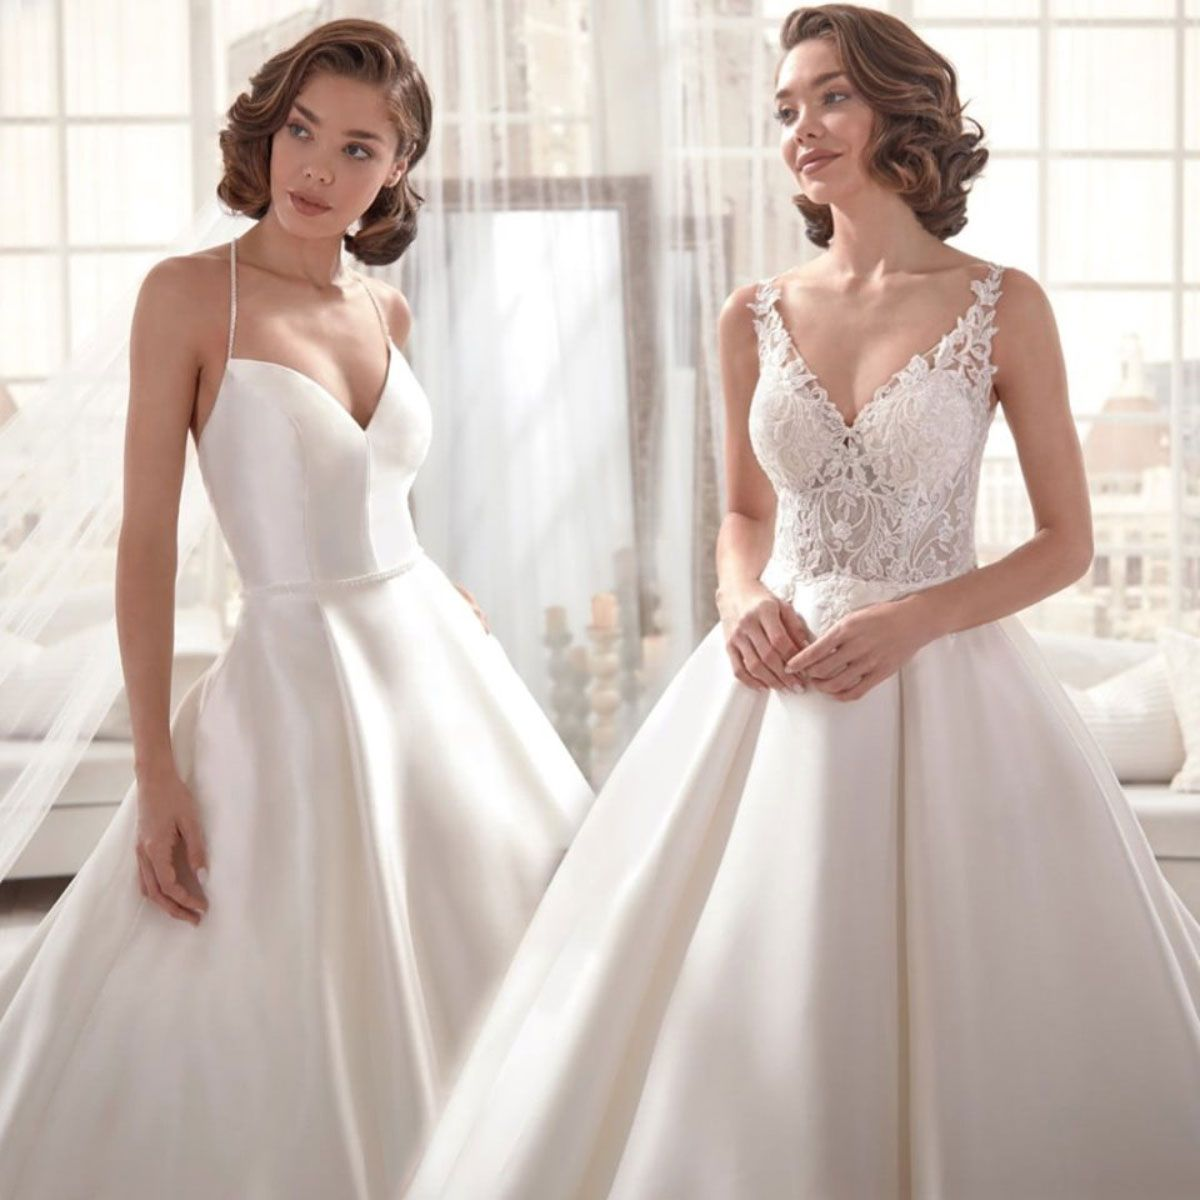 Vintage Wedding Dress Trend